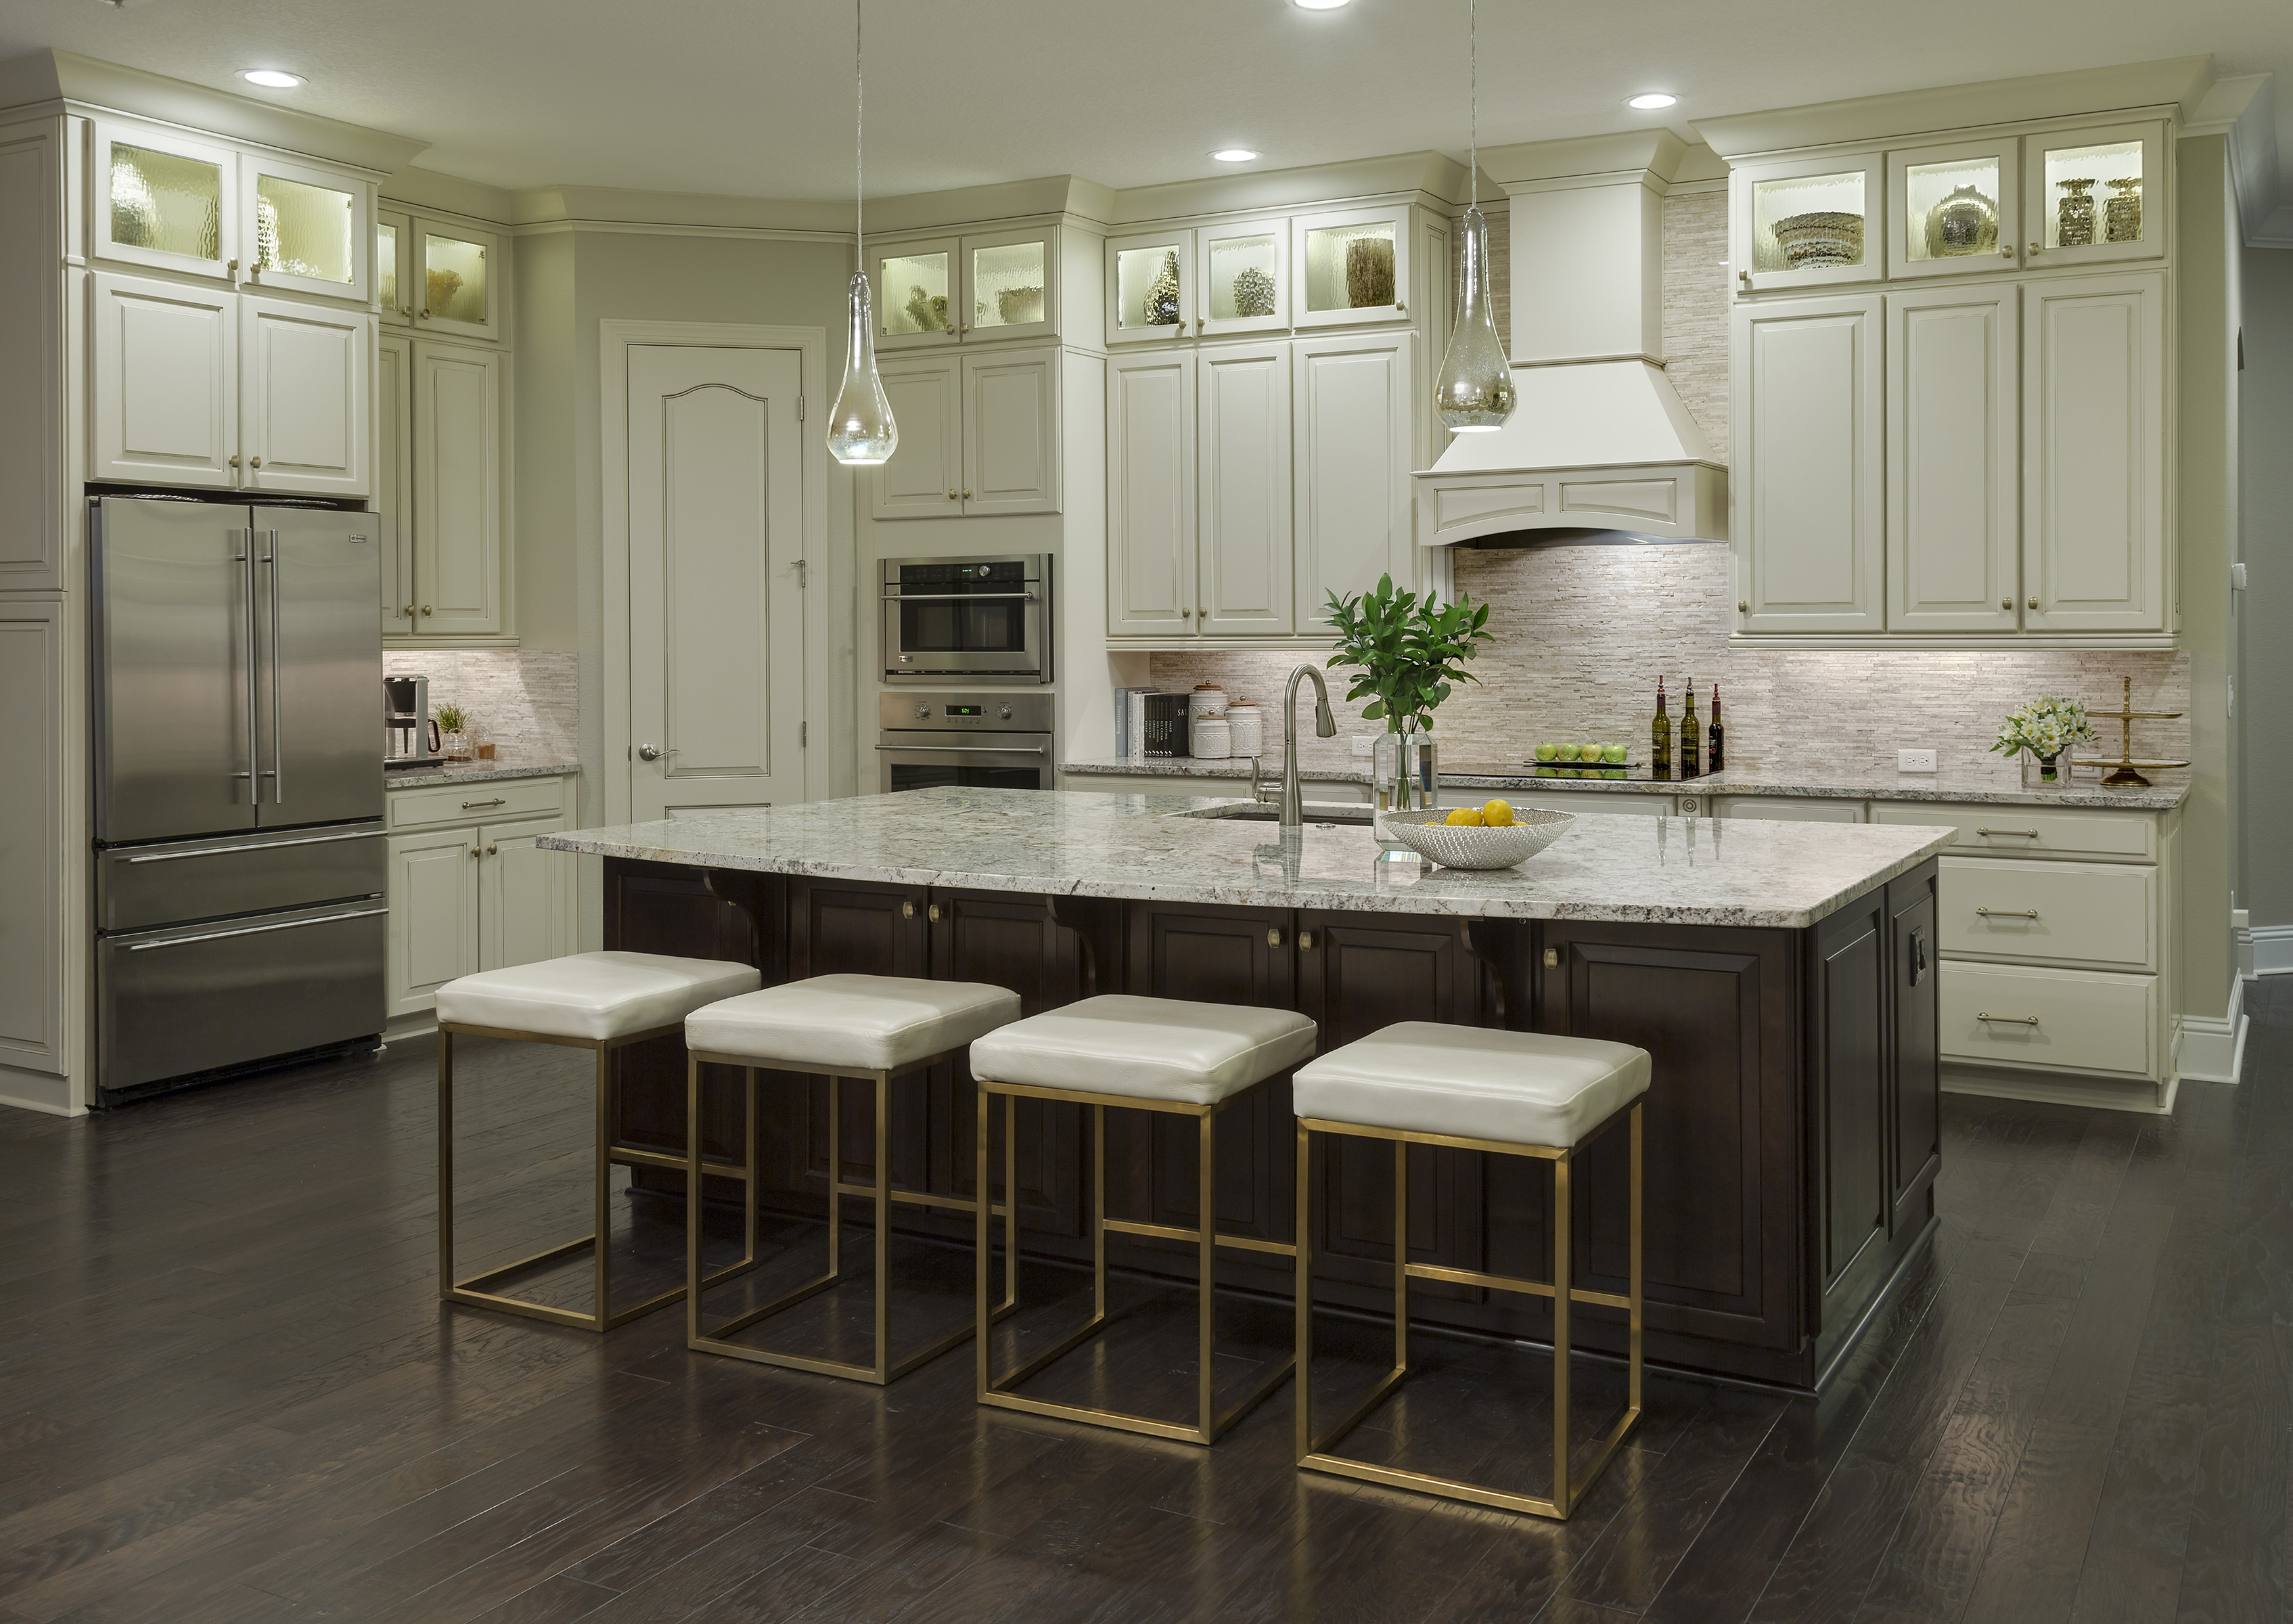 Transitionally Elegant Kitchen: John​ ​McClain​ ​–​ ​John​ ​McClain​ ​Design